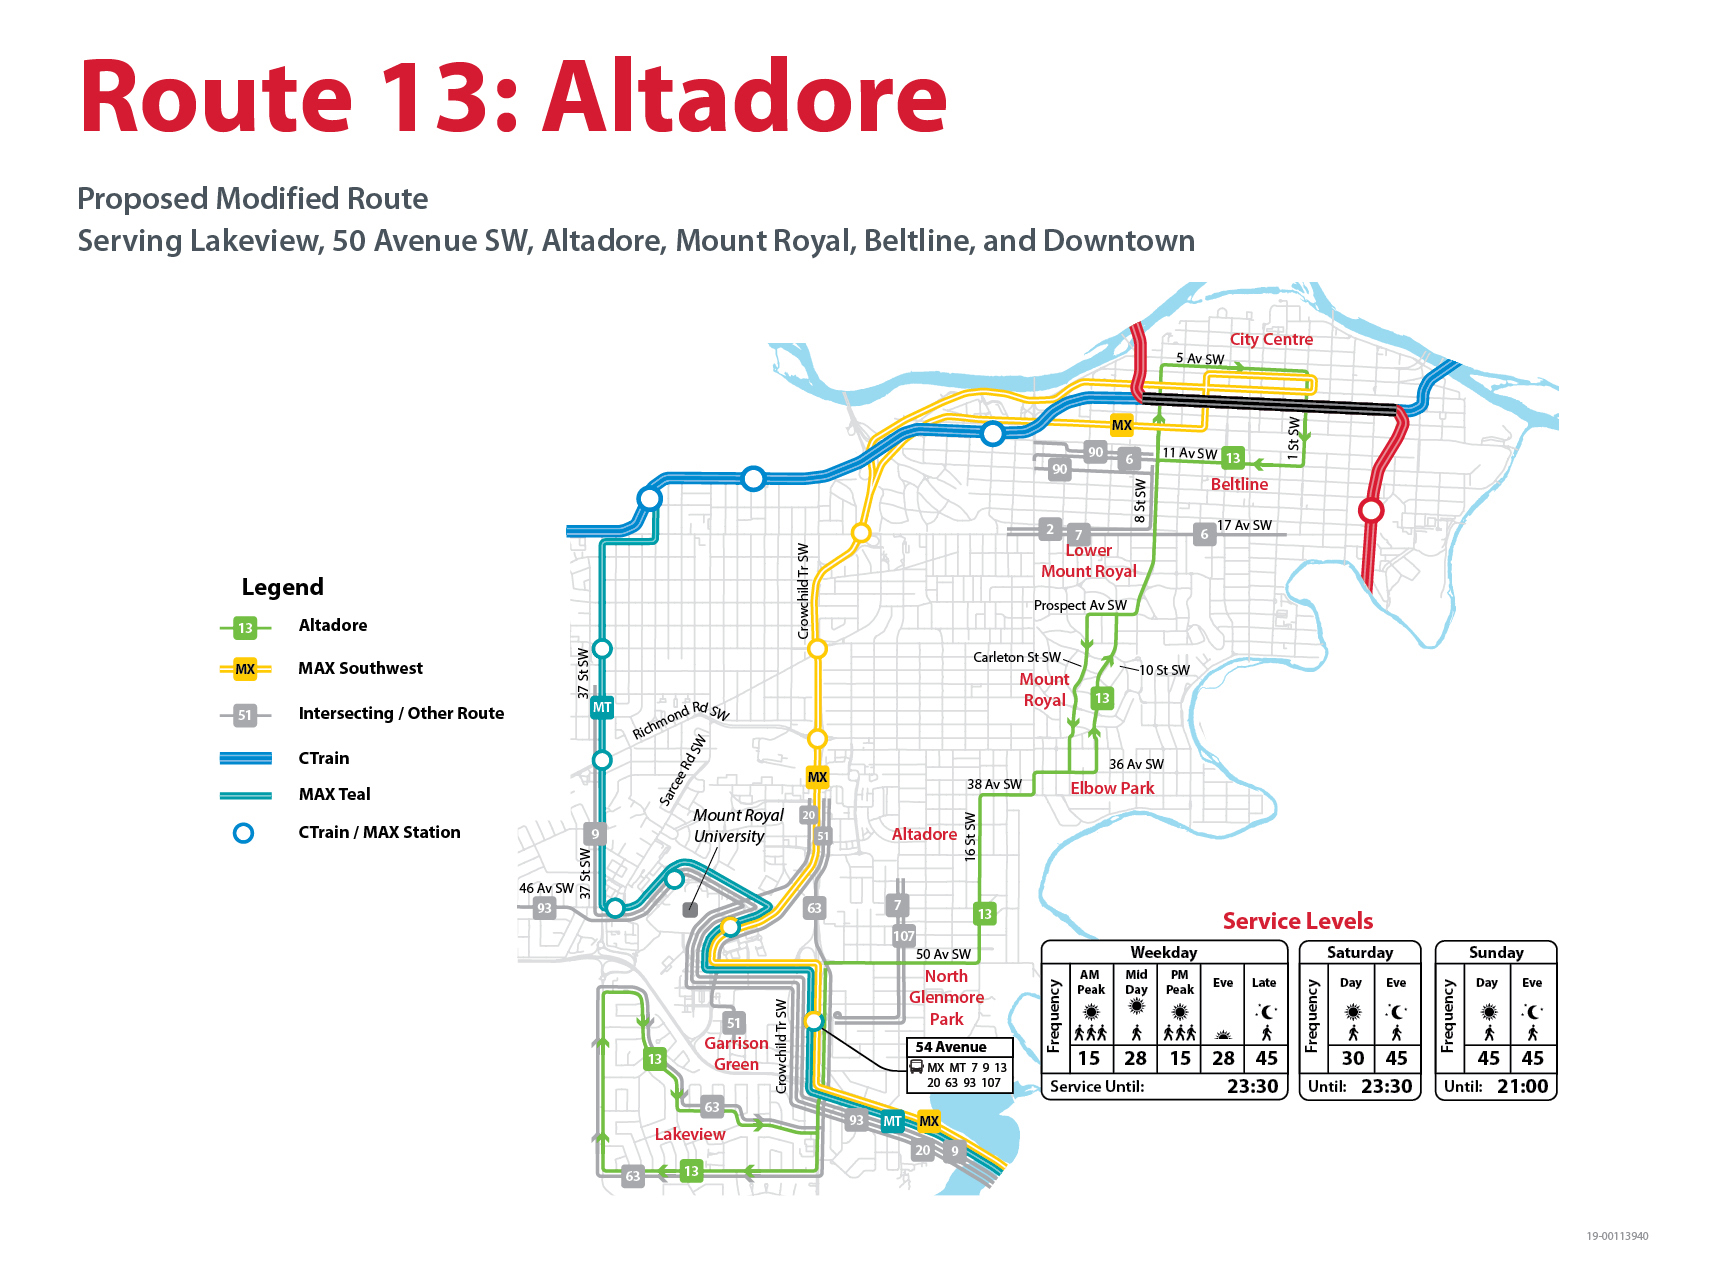 Proposed Changes to Route 13